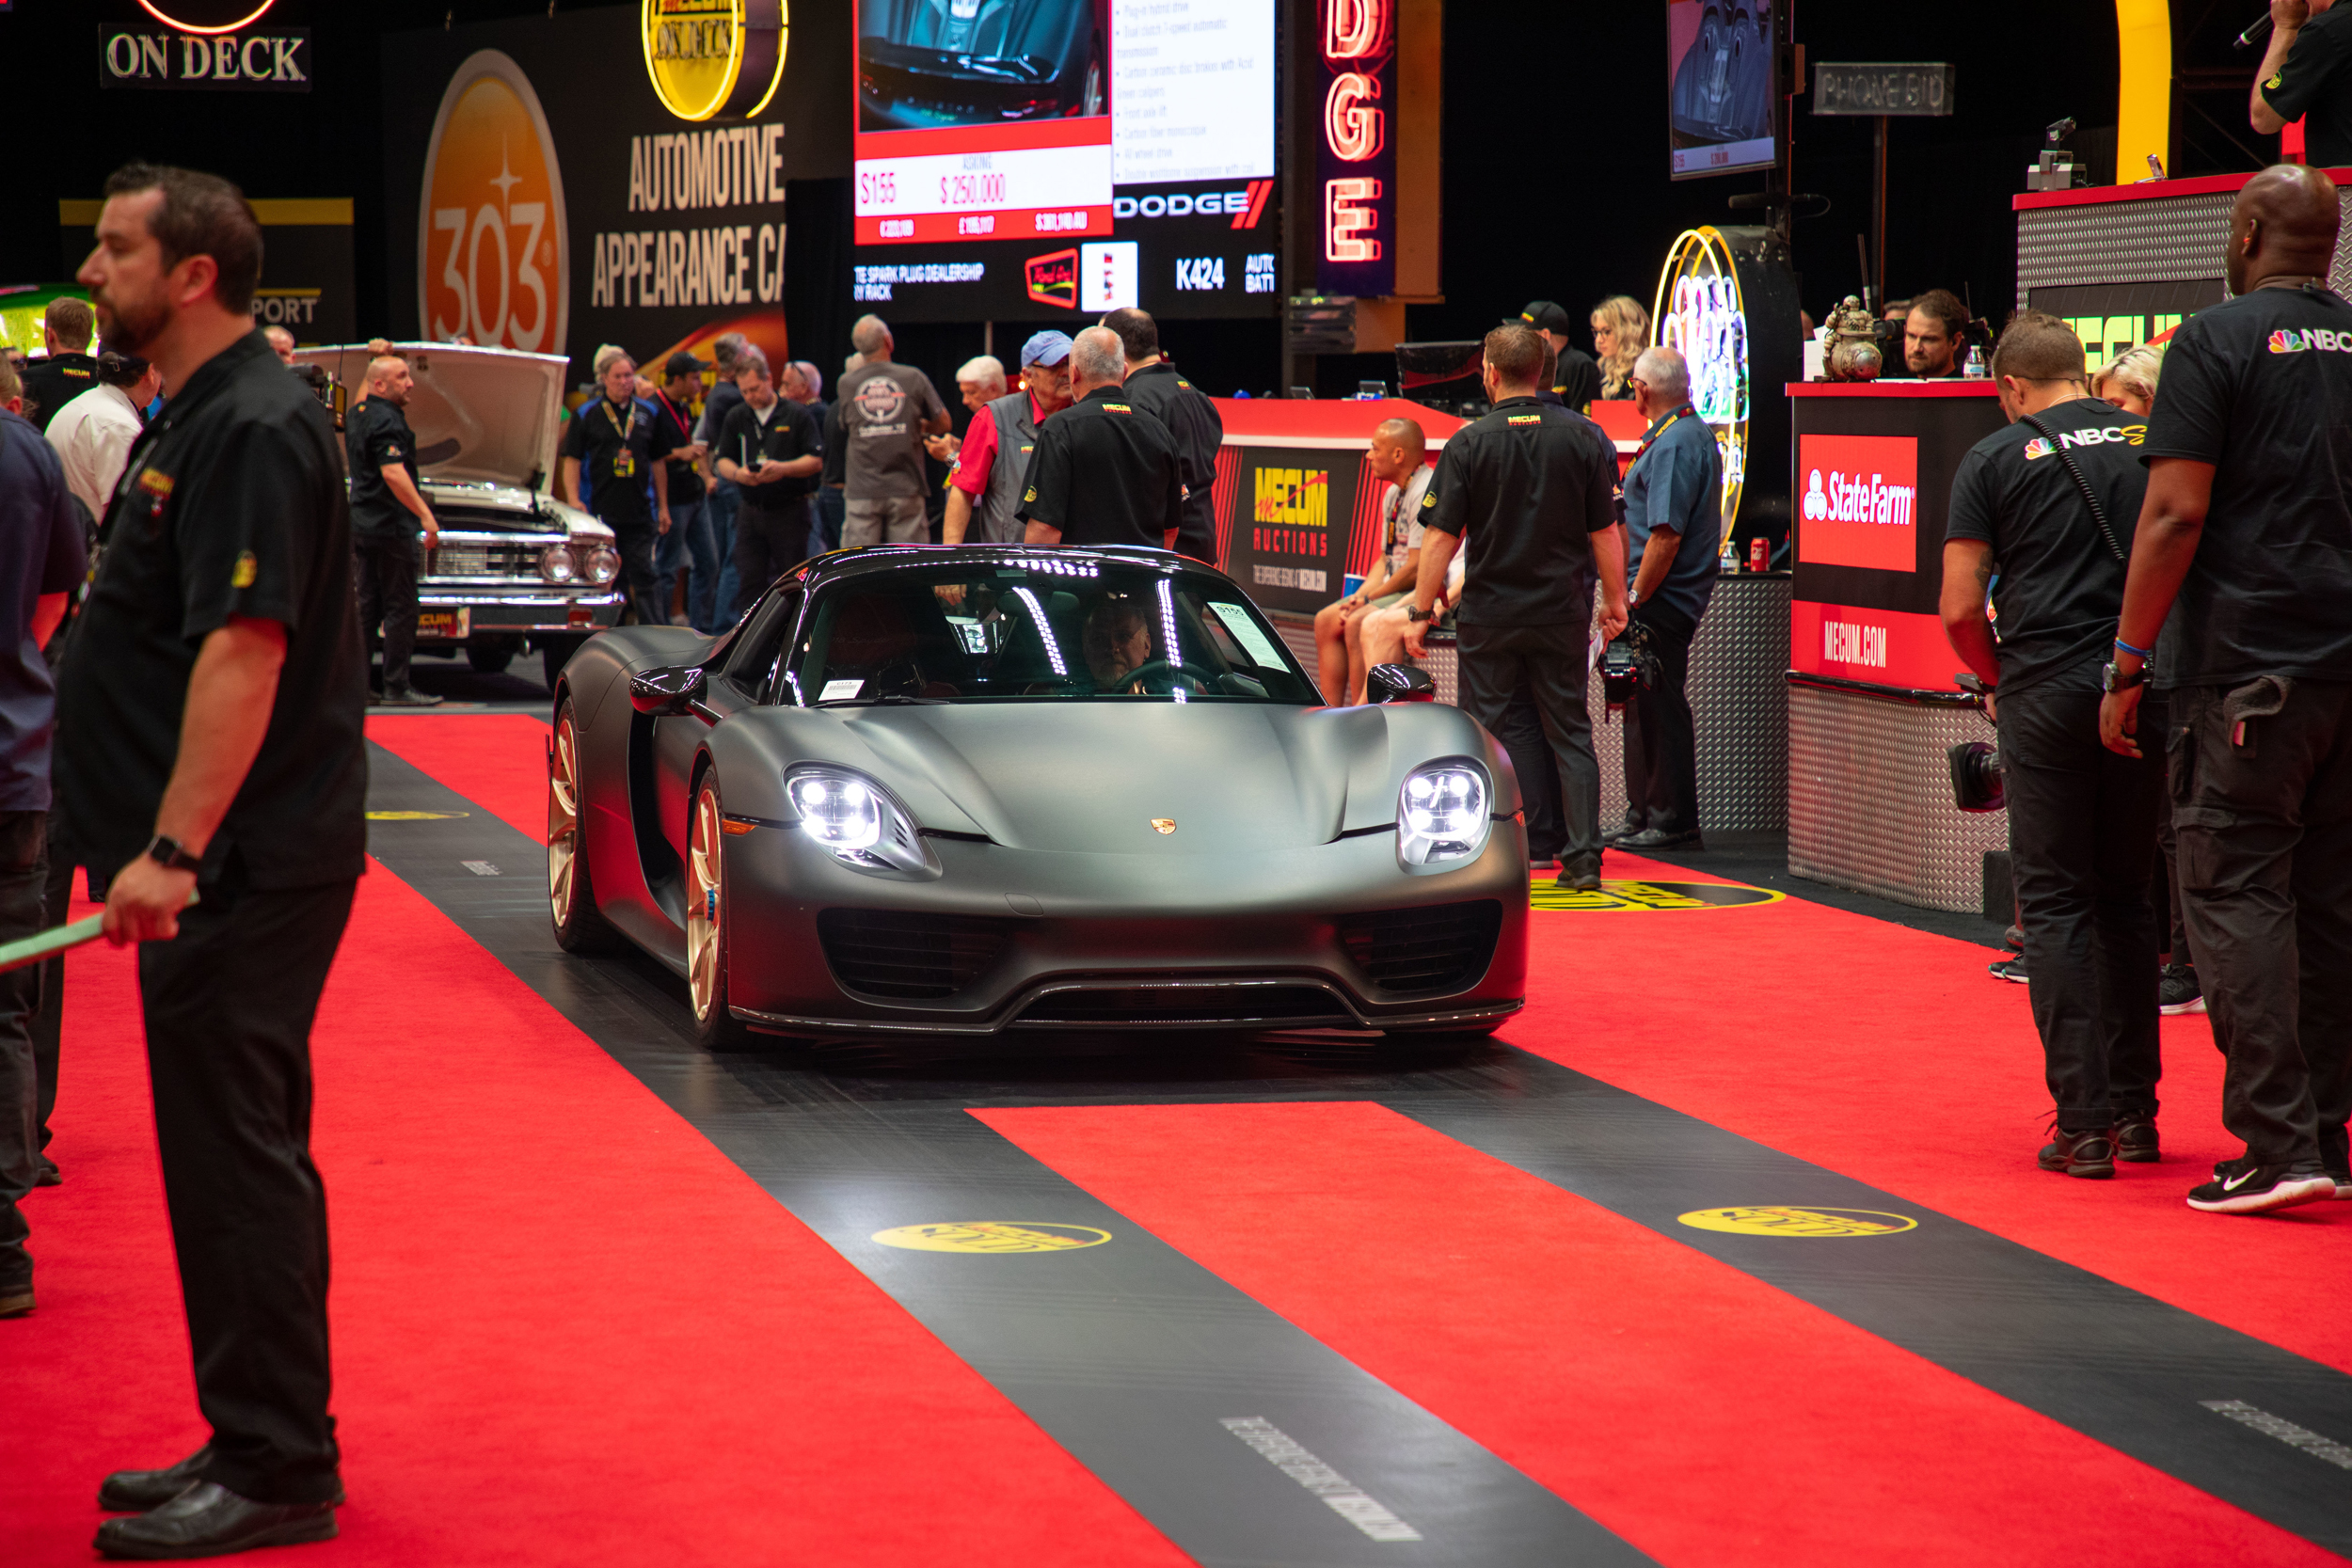 2015 Porsche 918 Spyder Weissach (Lot S155) Sells at $1,980,000 - Mecum Indy